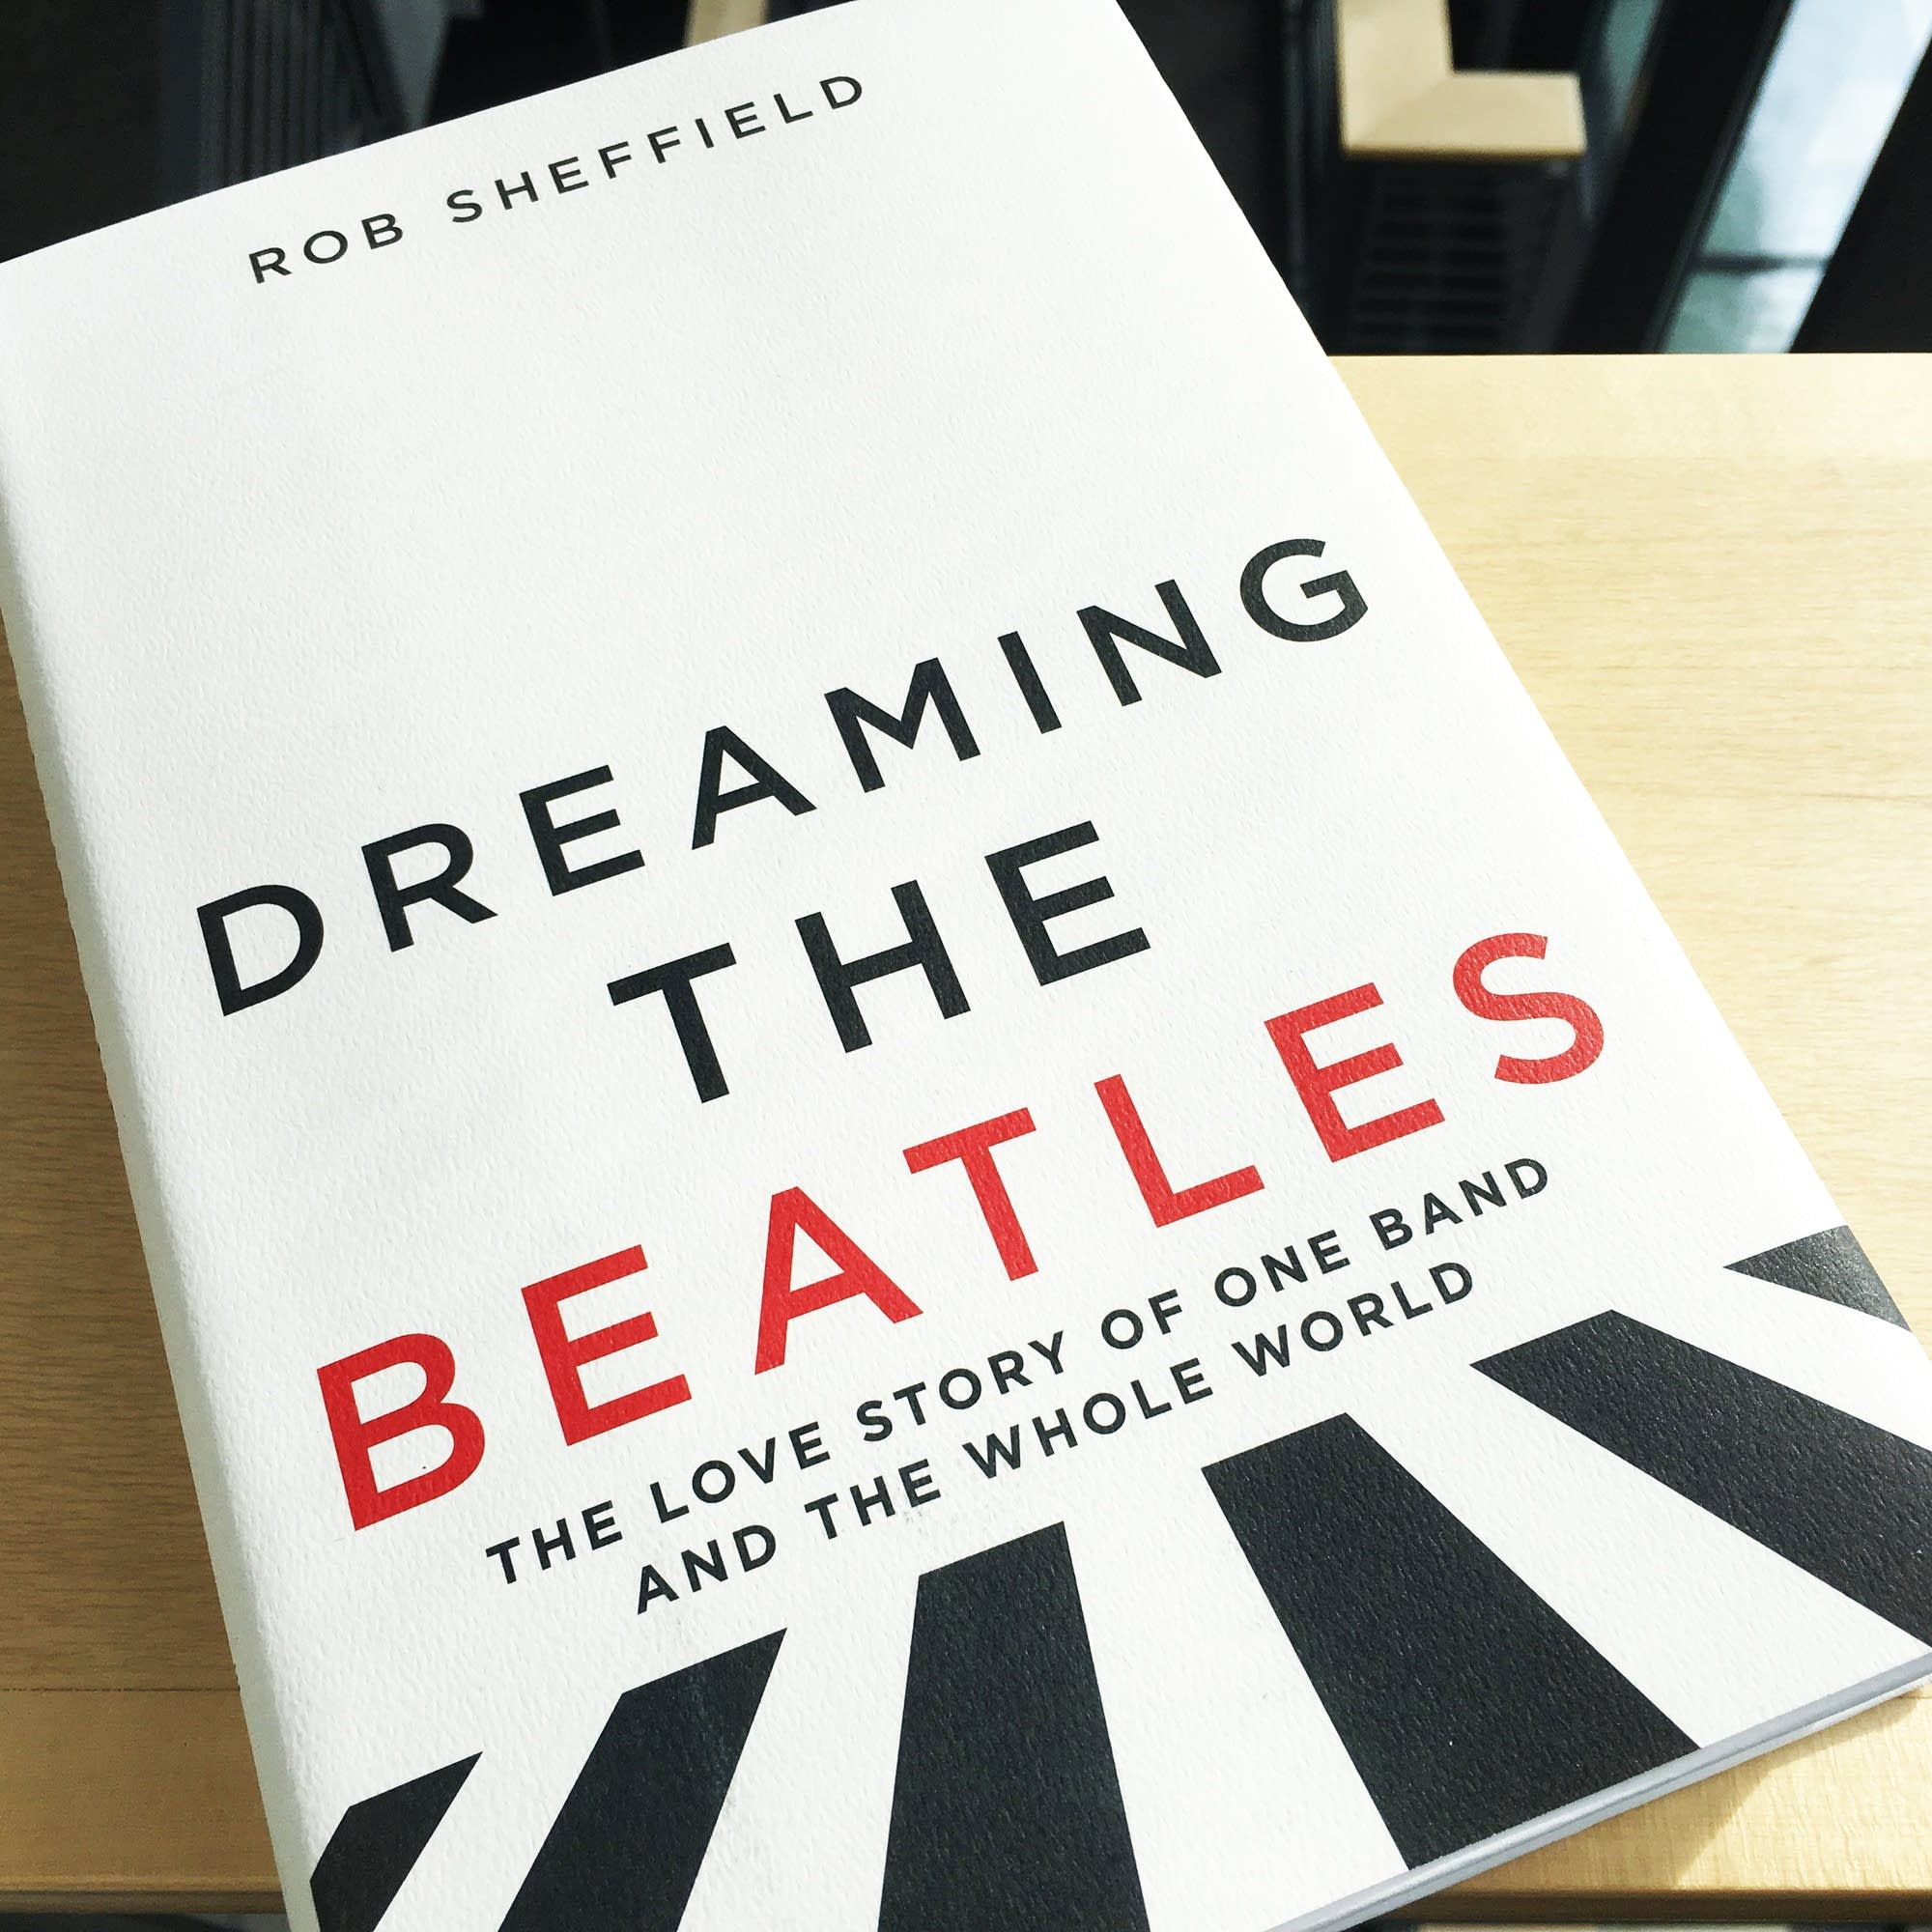 'Dreaming the Beatles' by Rob Sheffield.